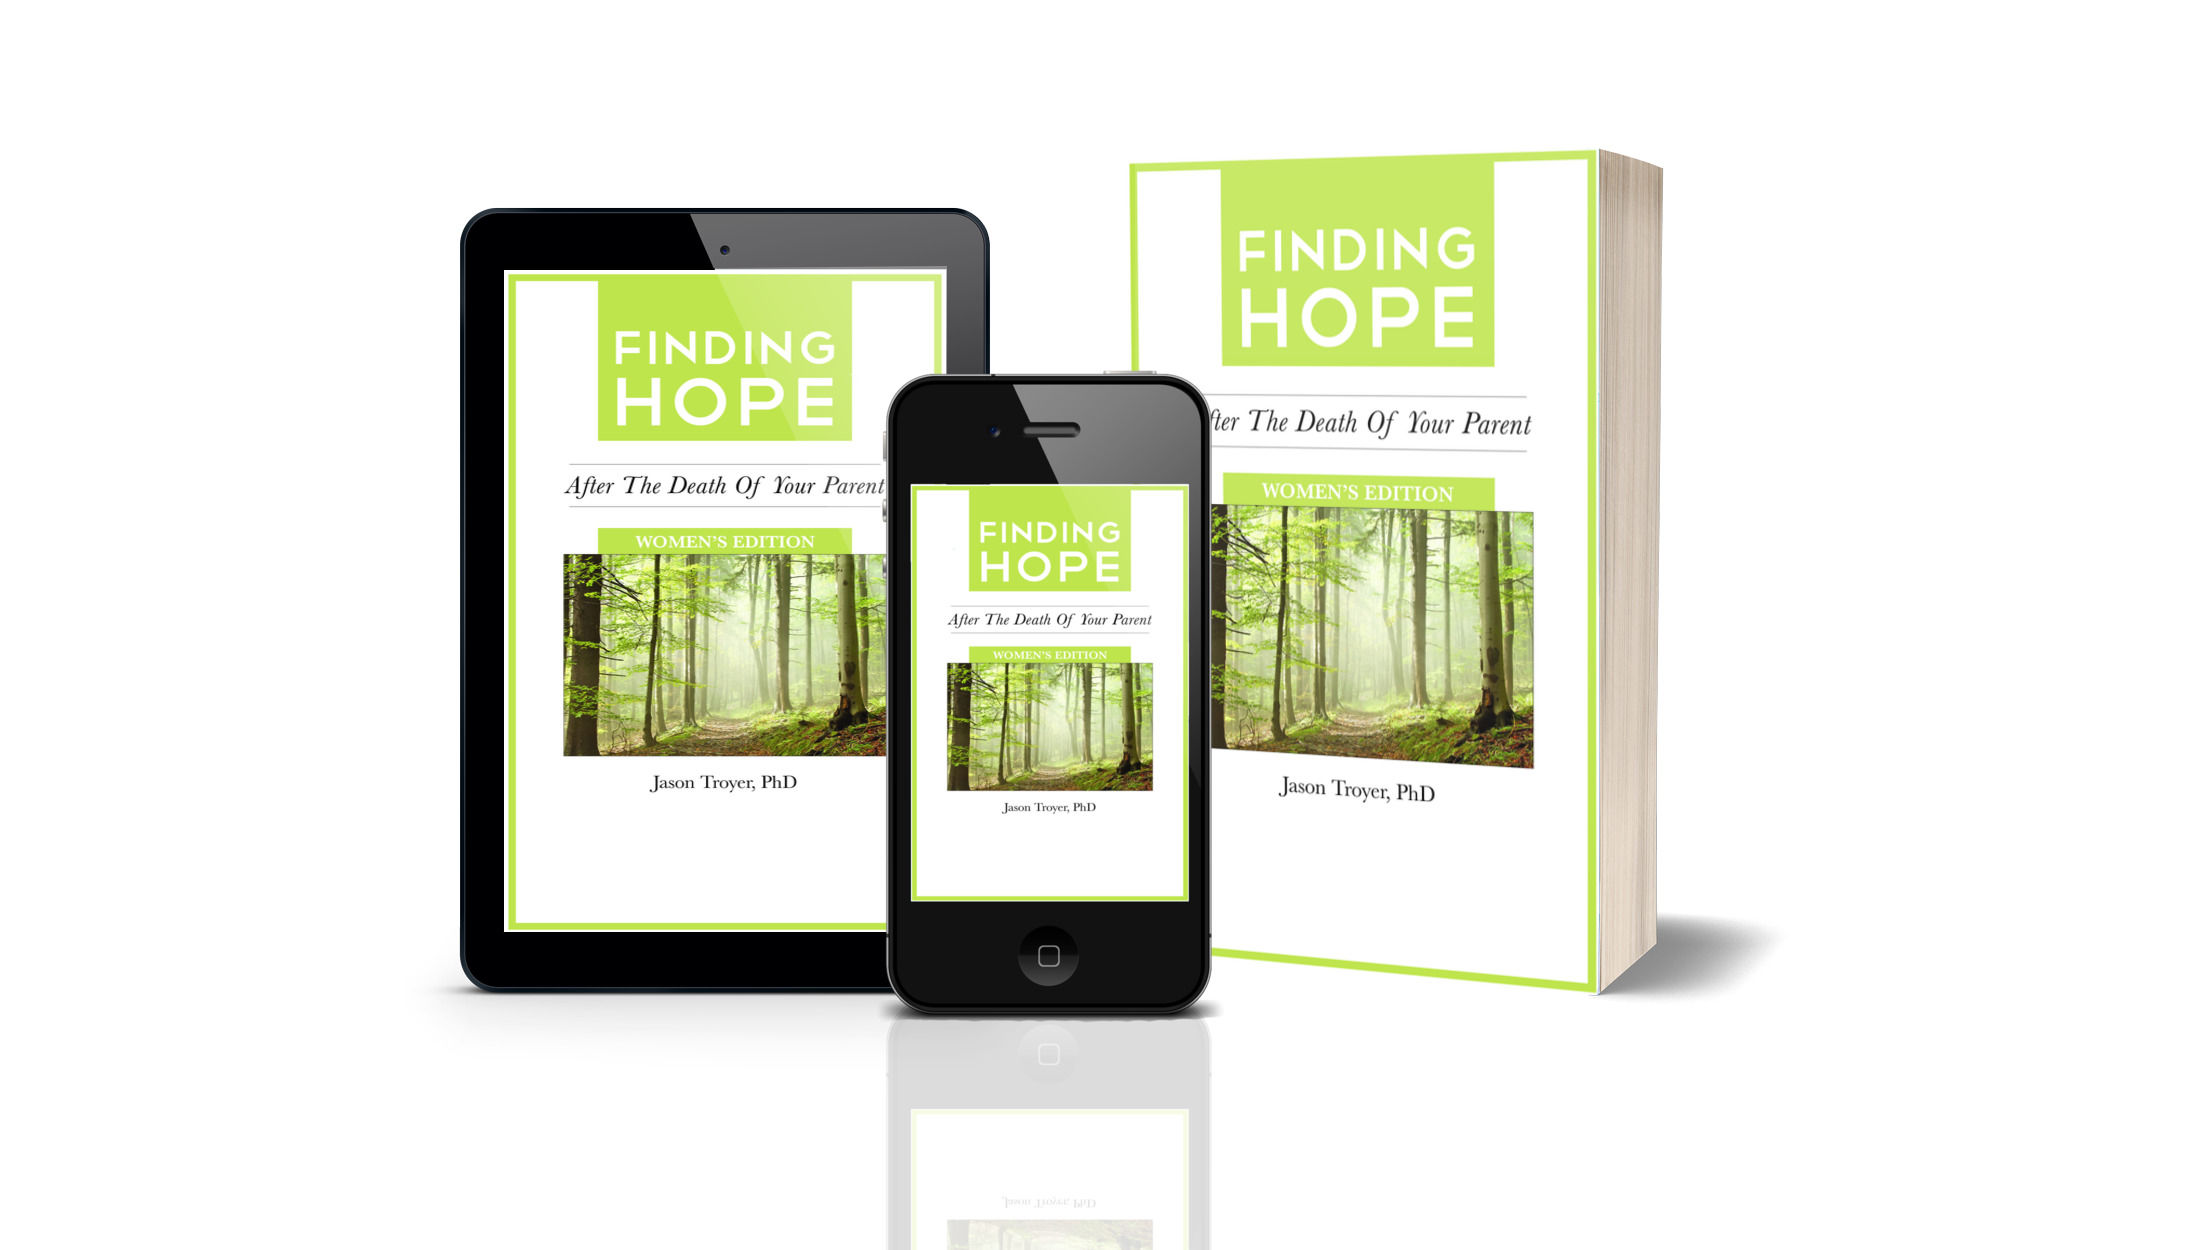 Finding Hope after the Loss of a Parent (Women's Edition) - Click Here to Download